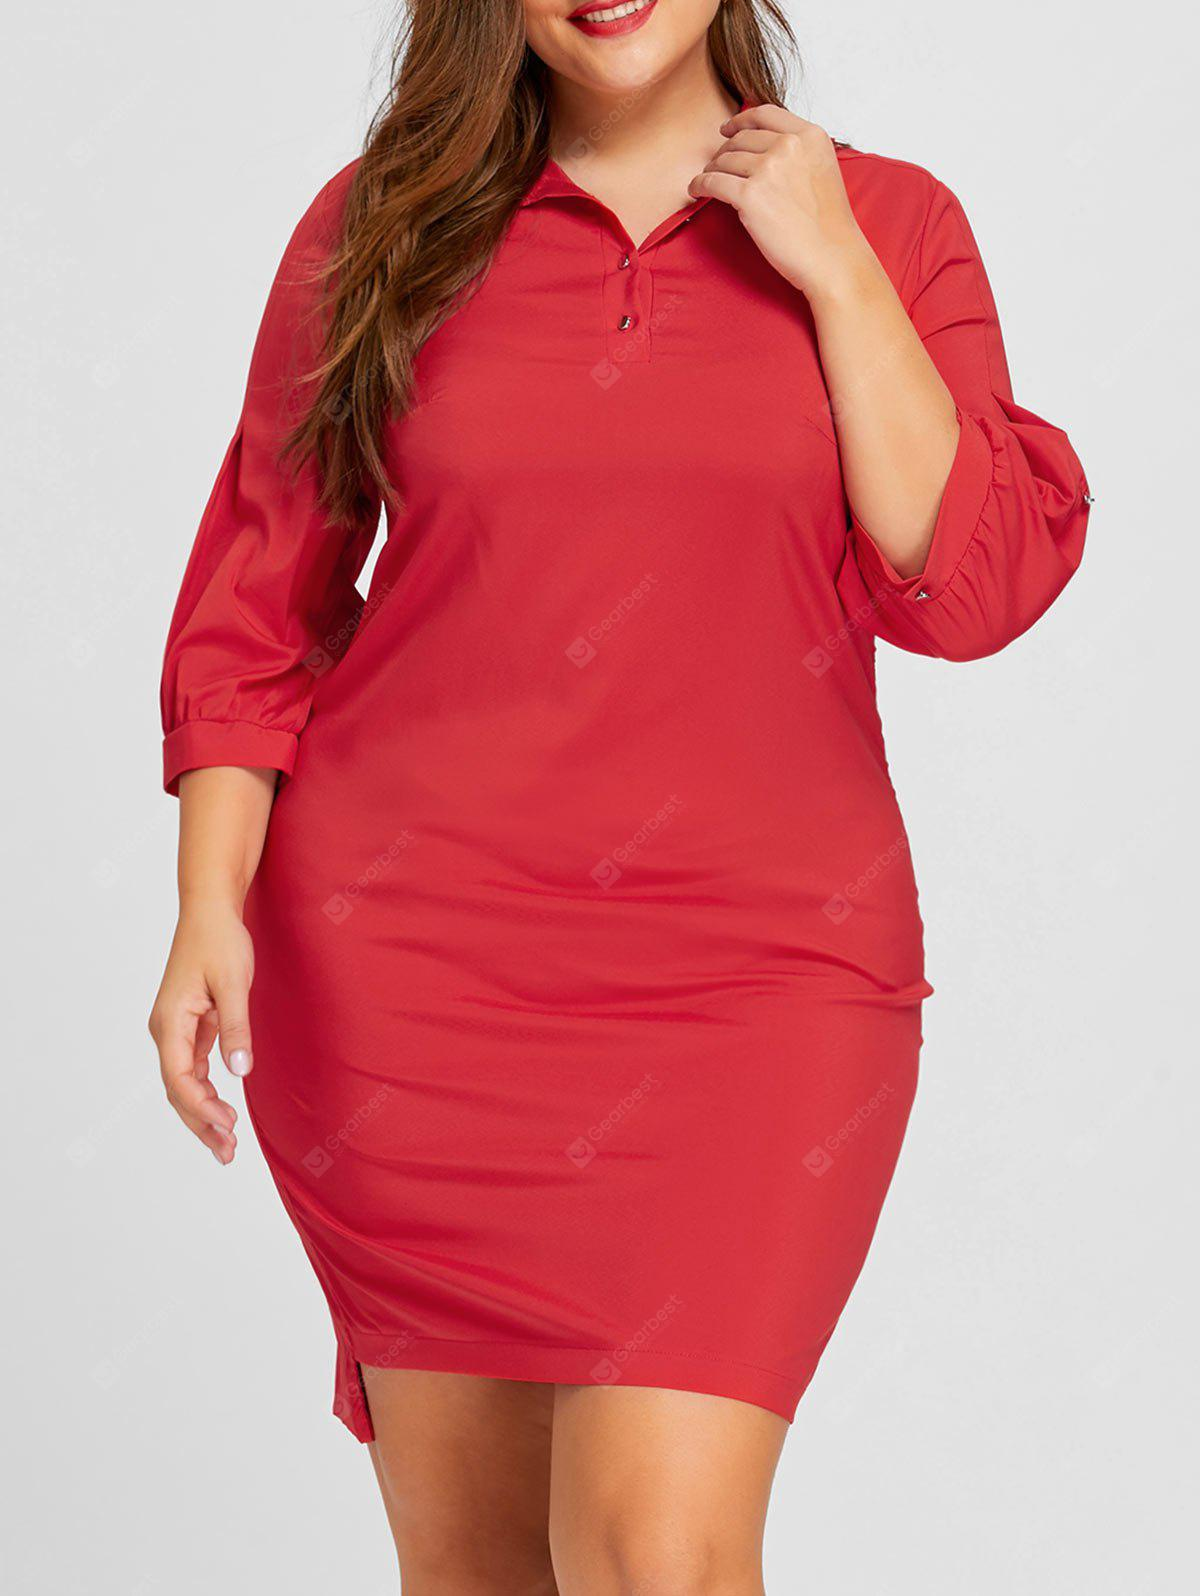 RED 5XL Plus Size Lantern Sleeve Shirt Dress